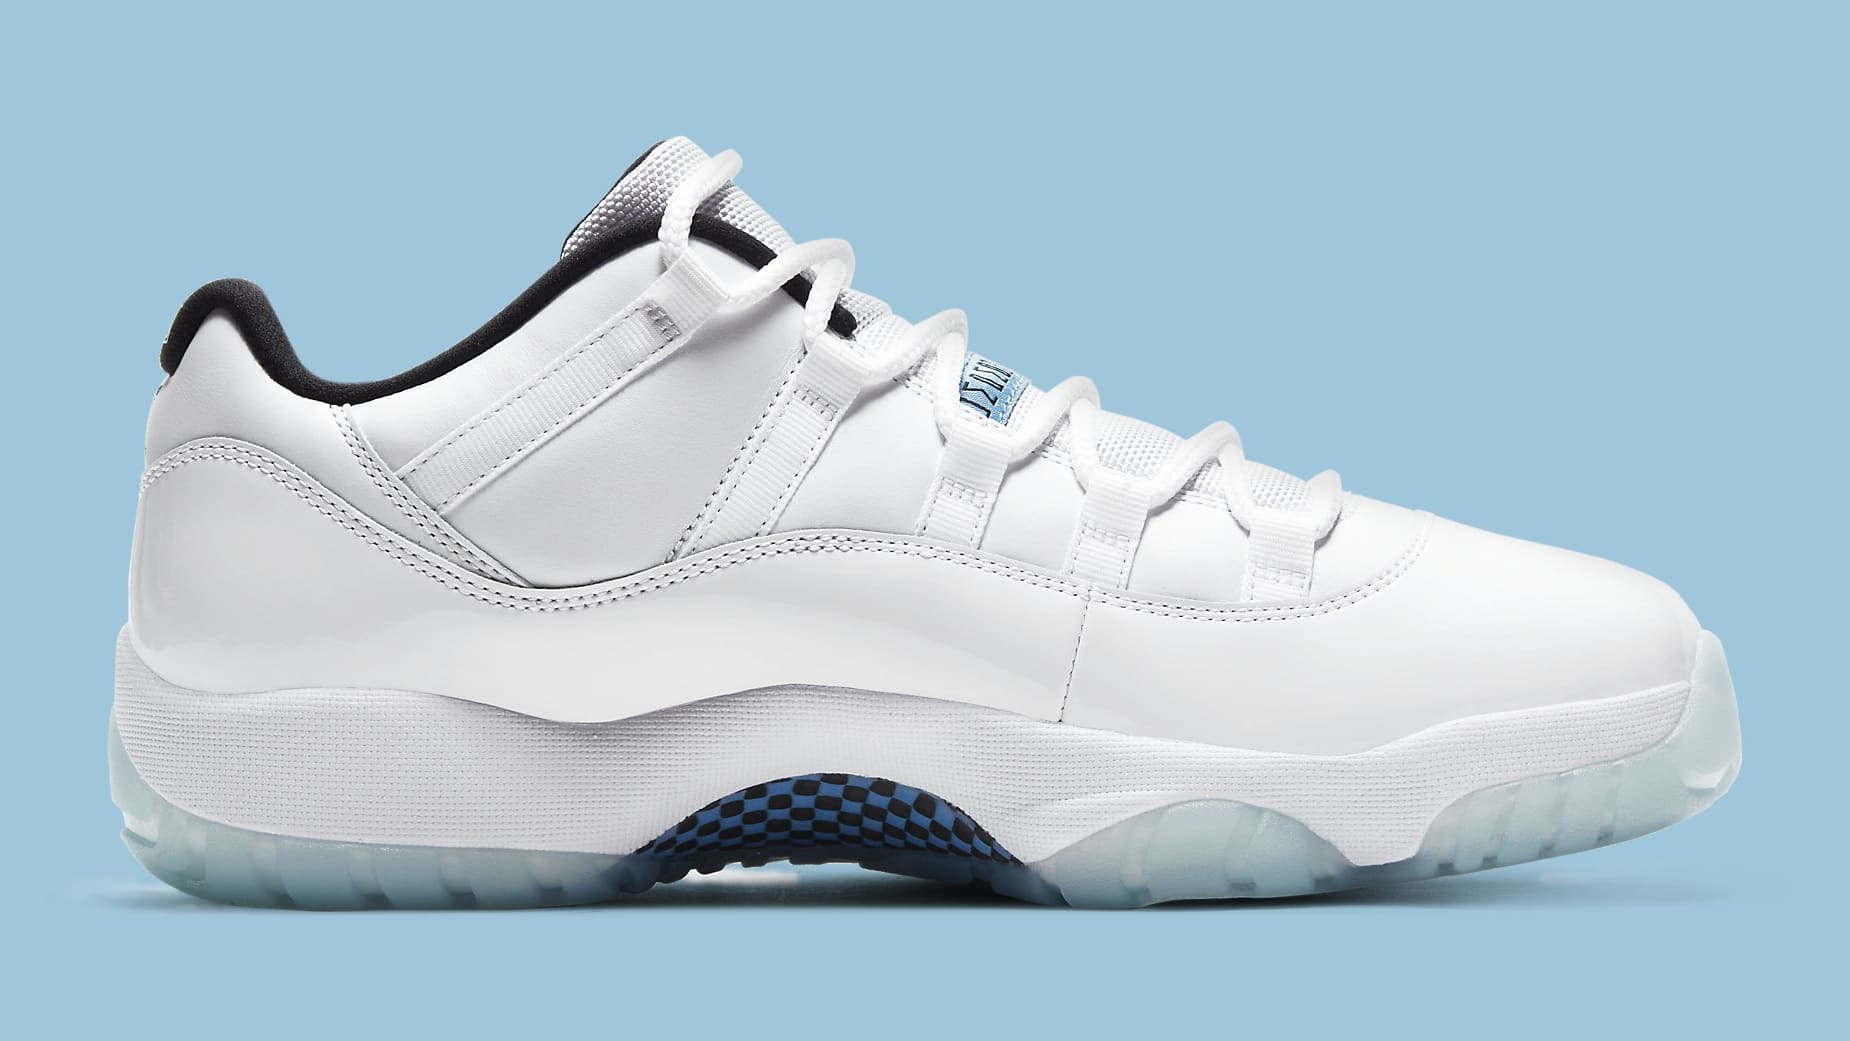 Air Jordan 11 XI Low Legend Blue Release Date AV2187-117 Medial